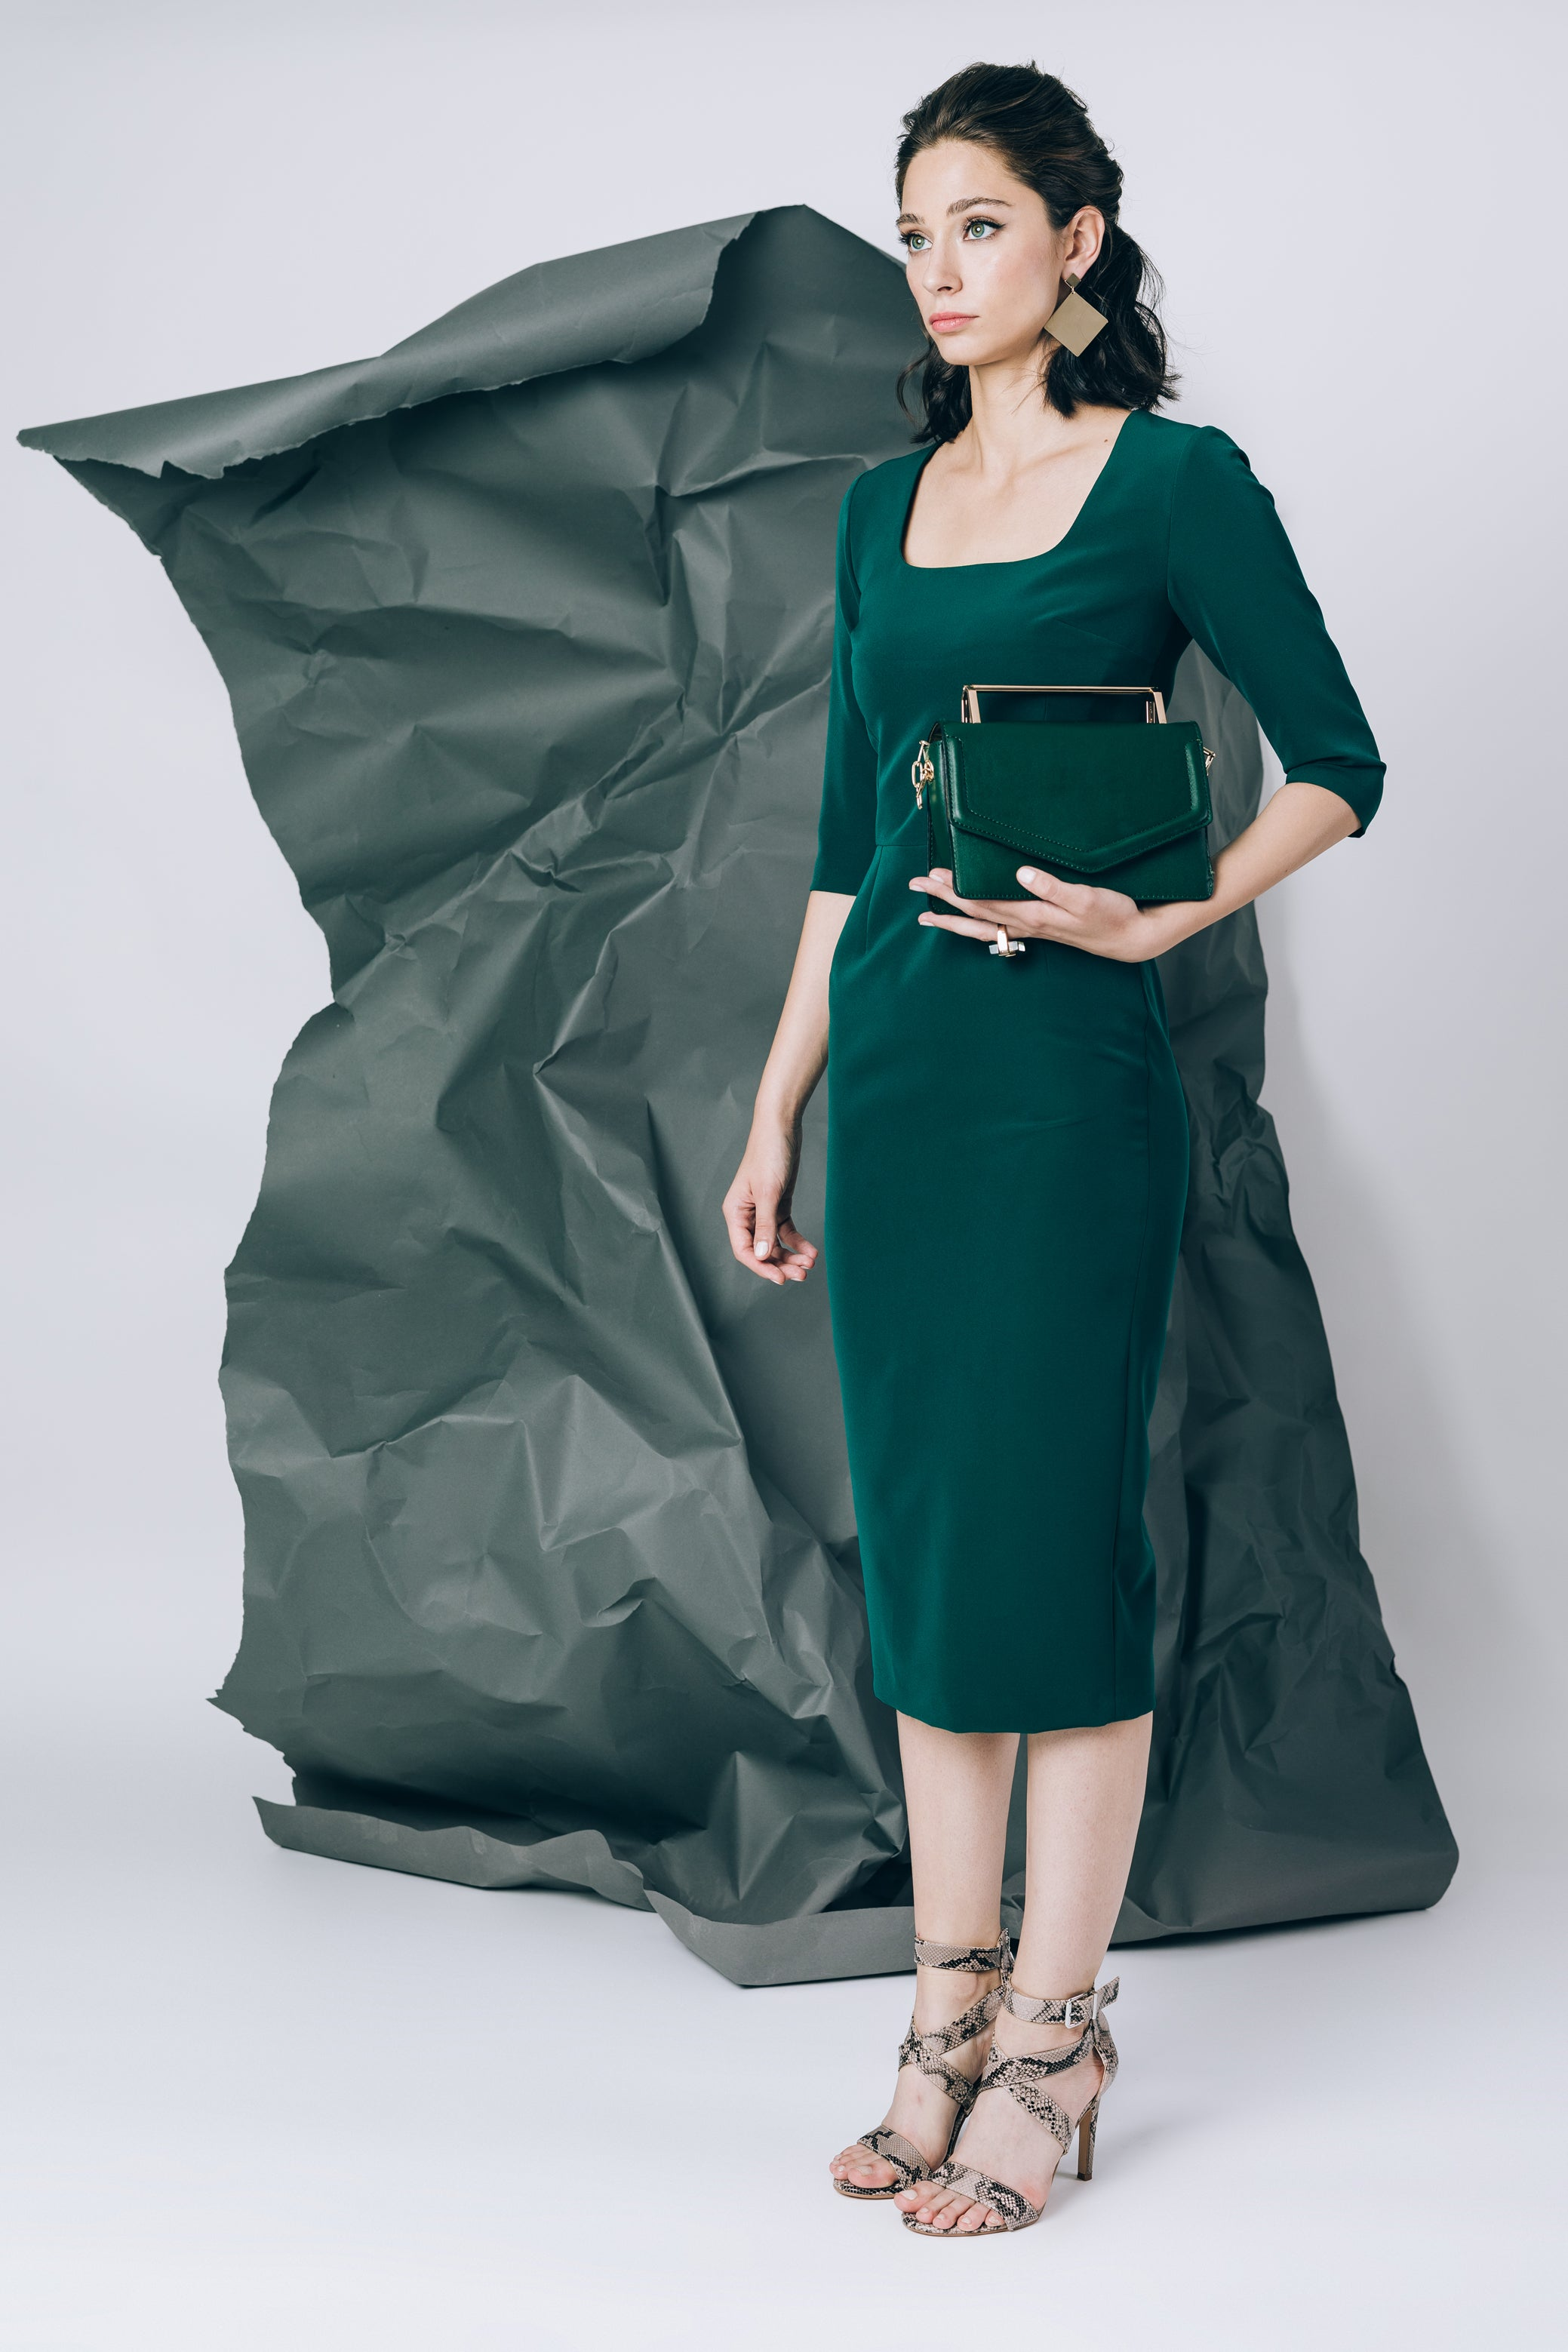 Mid-length dress in emerald green with square neckline